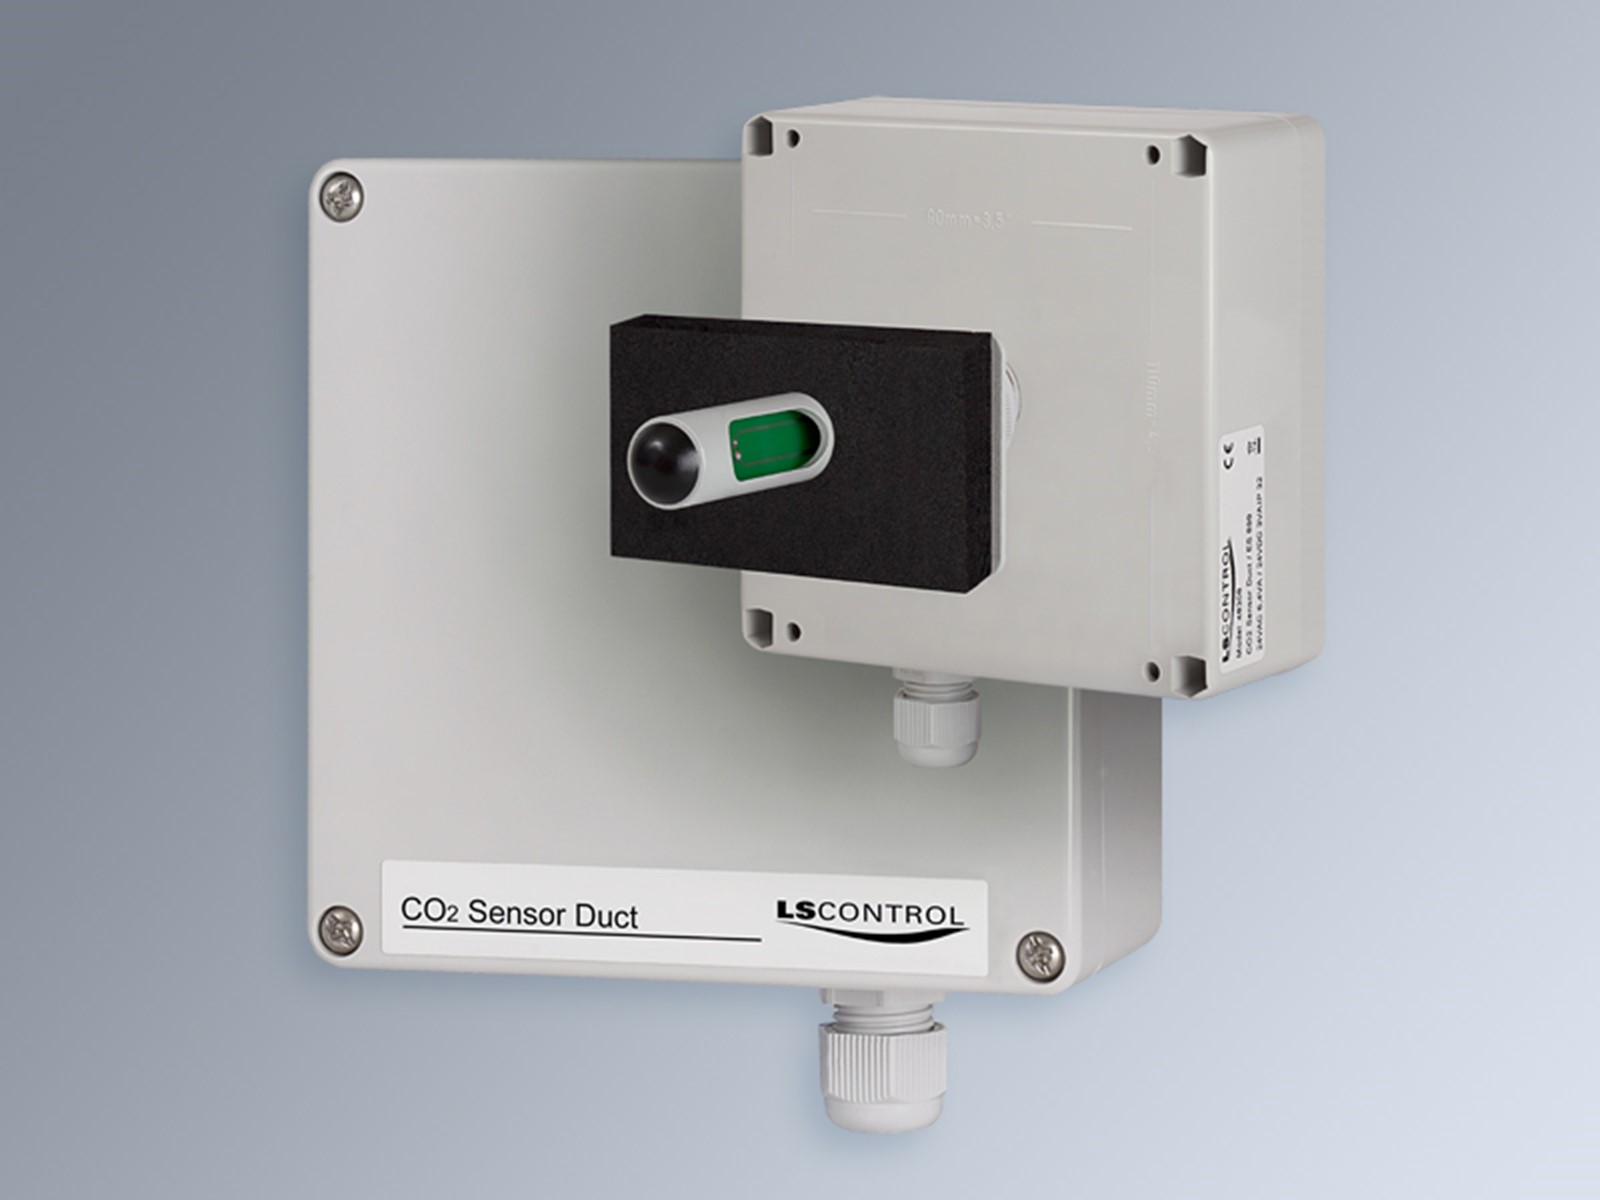 CO2+Temp. Regulate for Duct, Modbus / ES 899